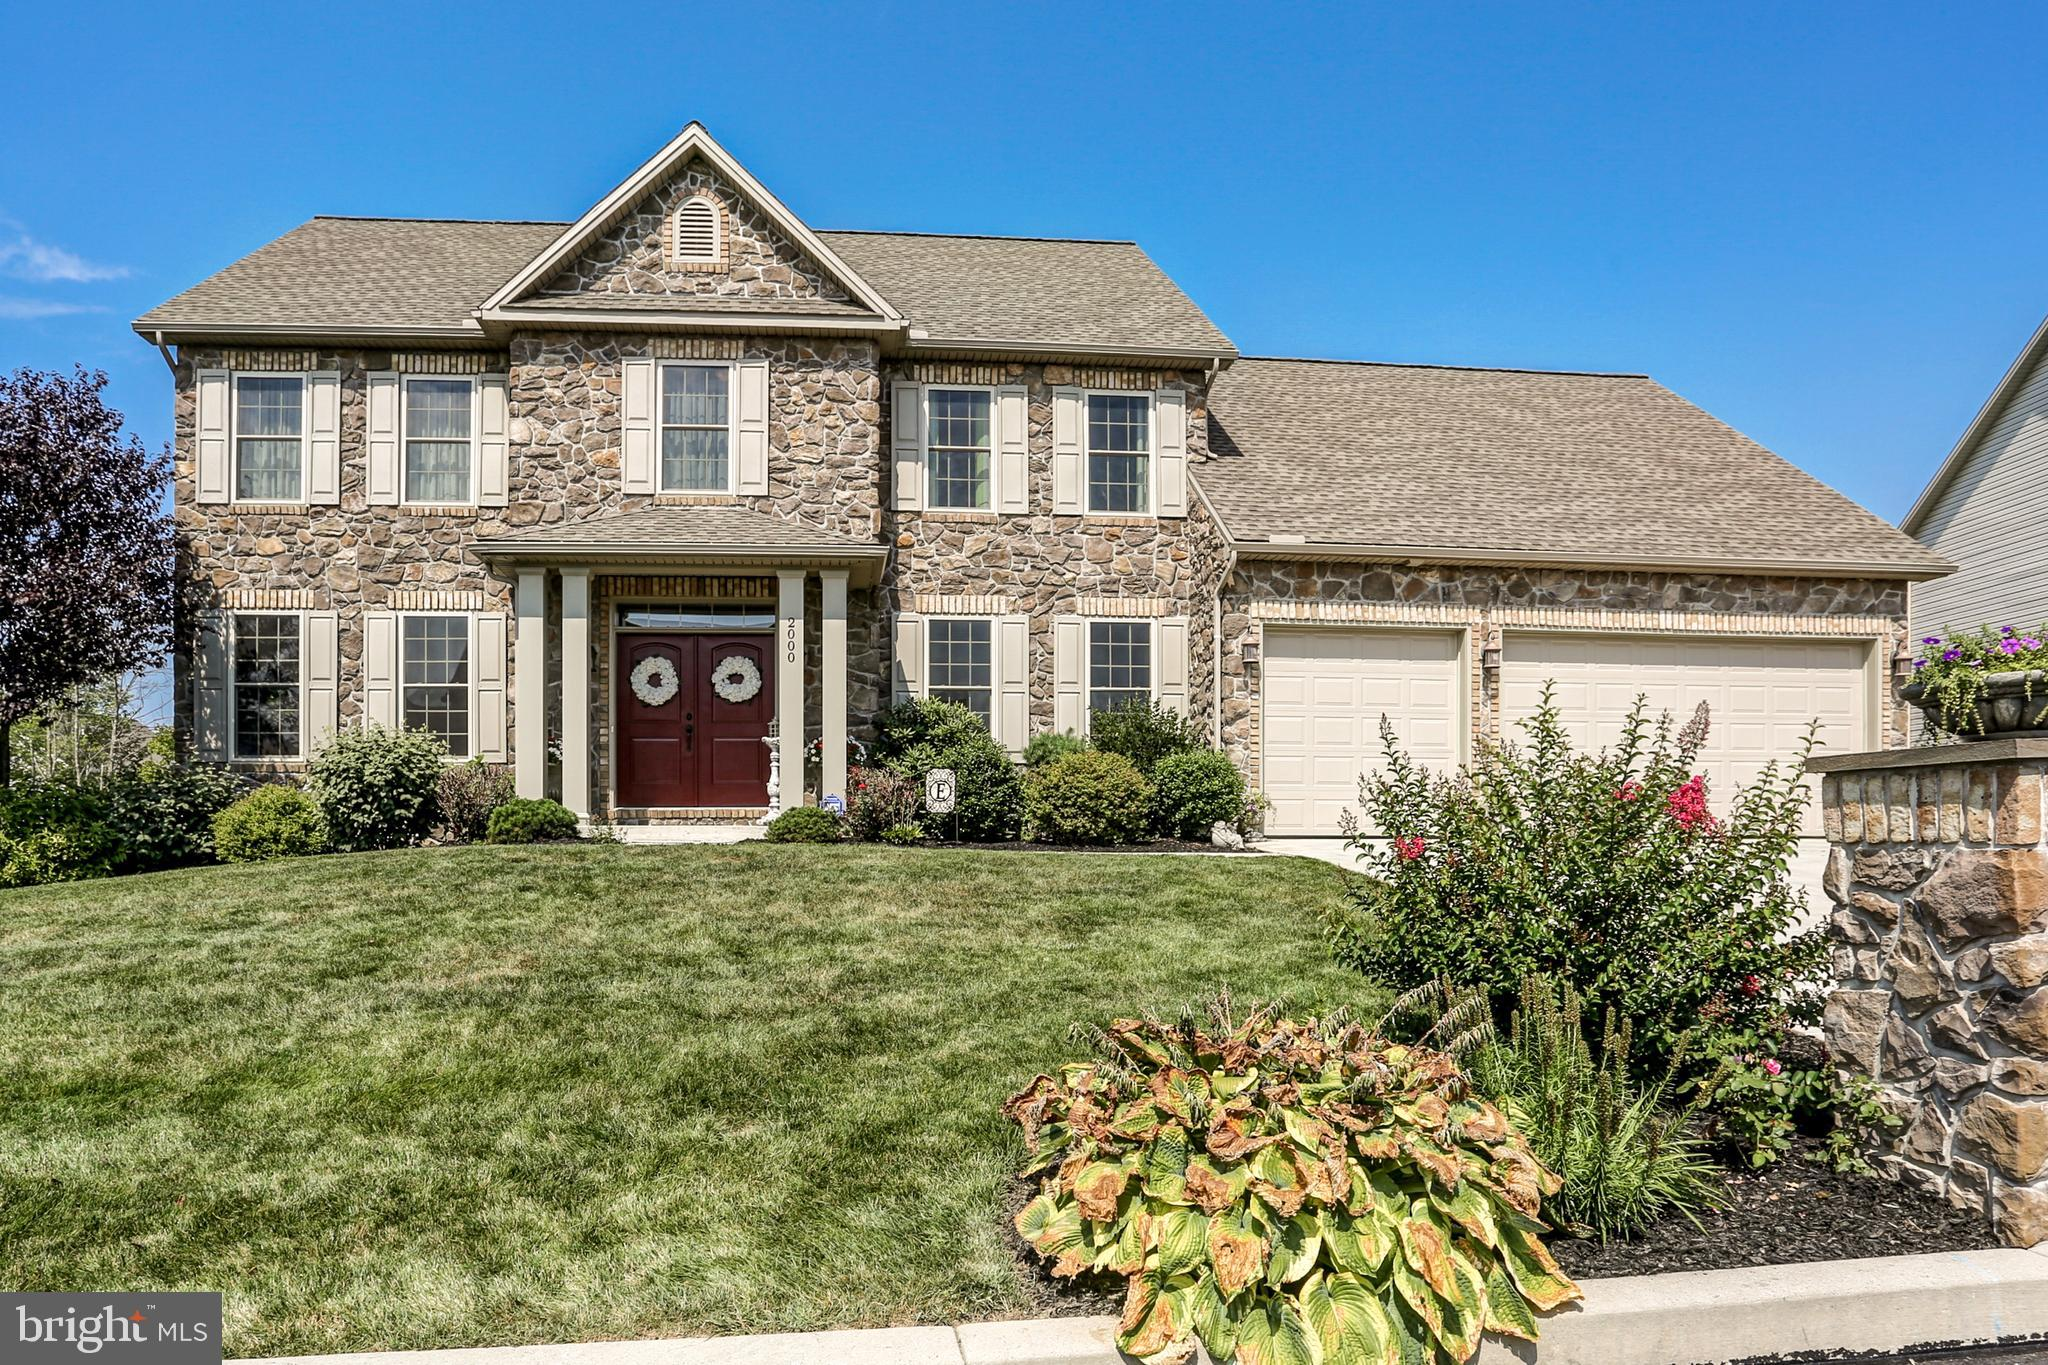 2000 OSPREY CIRCLE, MECHANICSBURG, PA 17050